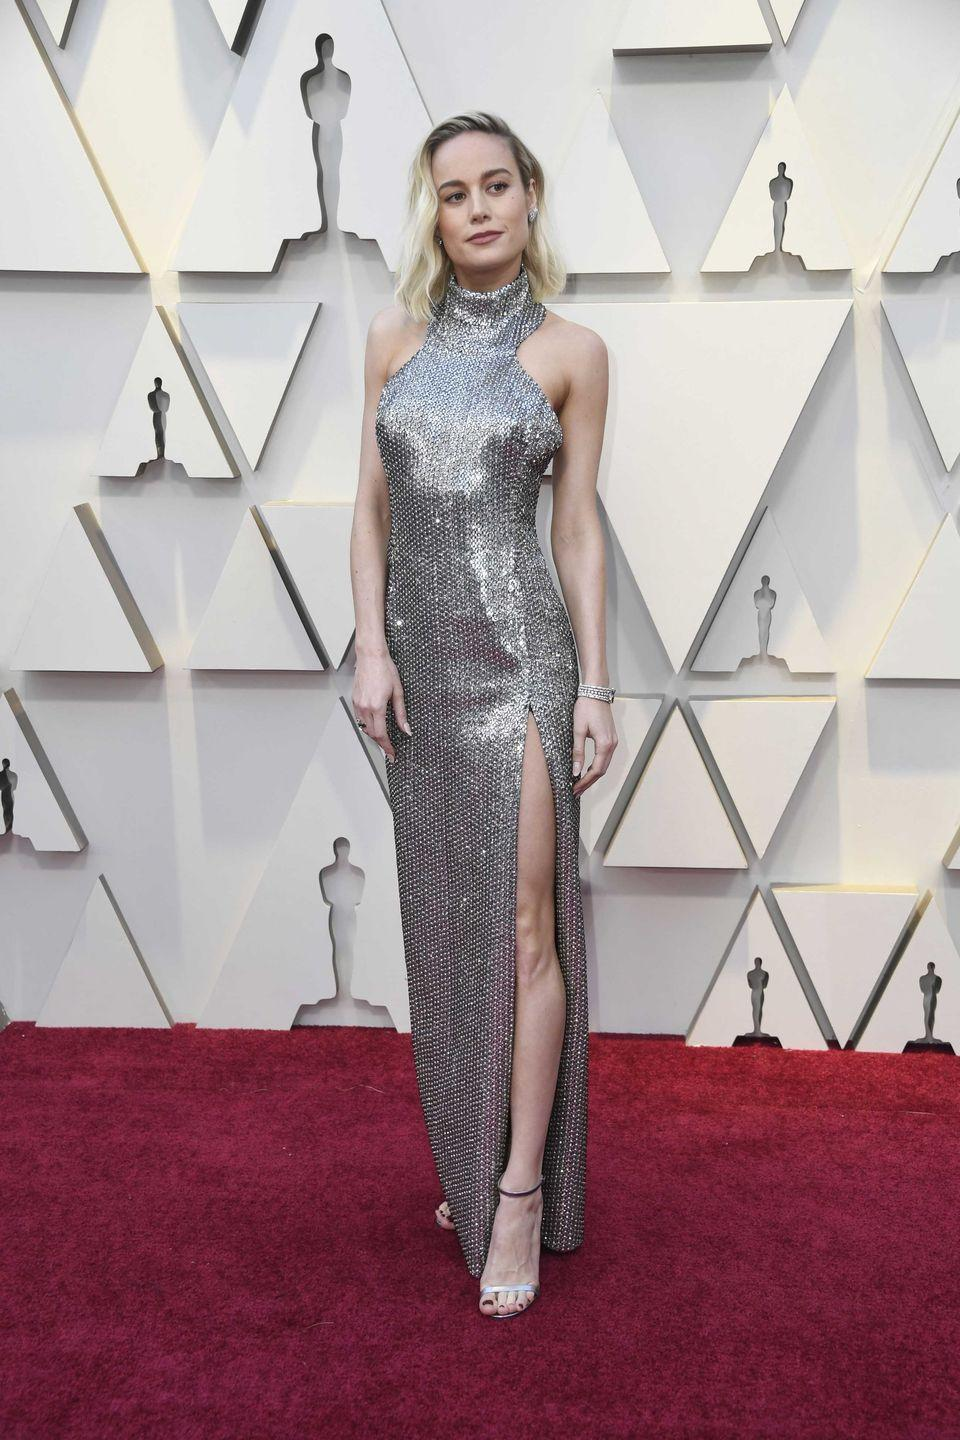 <p>You might mistake Brie Larson *the singer* for a slightly chiller Avril Lavigne and definitely not mistake her for Brie Larson *the actress* in her gut-wrenching, Oscar-winning performance in <em>Room</em>. The <em>Captain Marvel </em>actress's debut album, <em>Finally Out of P.E.</em>, was angsty and pop-punk. Her single <em>She Said</em> peaked at number 31 on the Billboard Top 100. Not bad!</p>